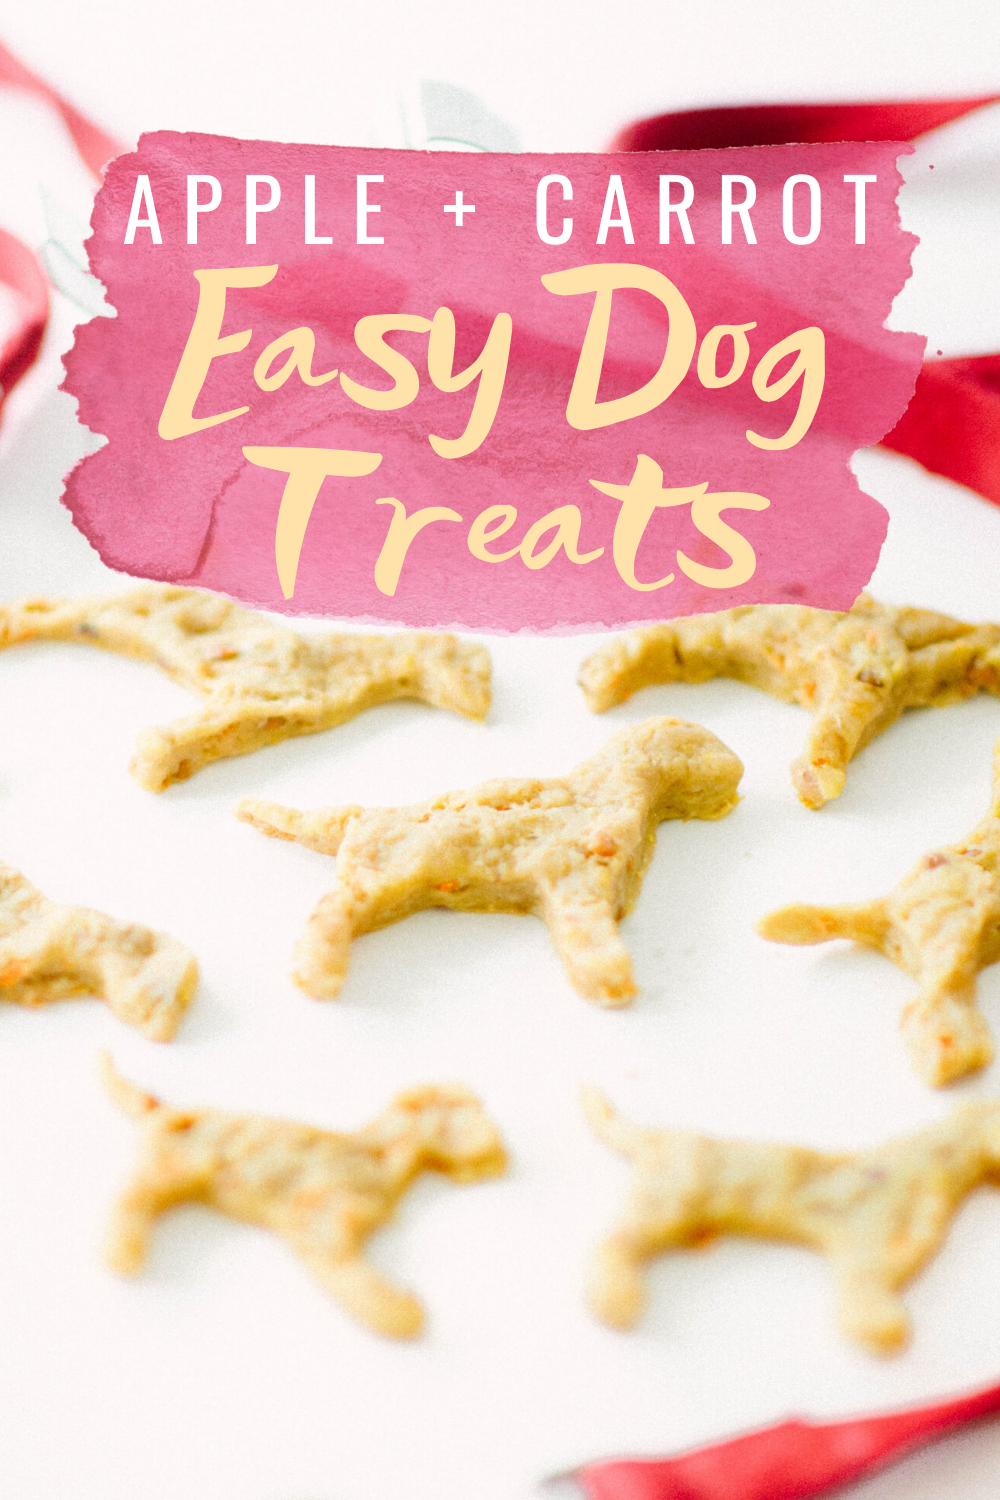 Easy Apple + Carrot Dog Treats - Homemade Dog Treats - Easy Dog Treats - Dog Treats That Do Not Contain Peanut Butter - Easy Dog Treats - Labrador Retriever - Pet Treats - Communikait by Kait Hanson #labradorretriever #easydogtreats #homemadedogtreats #carrotdogtreats #appledogtreats #pets #dogs #chocolatelab